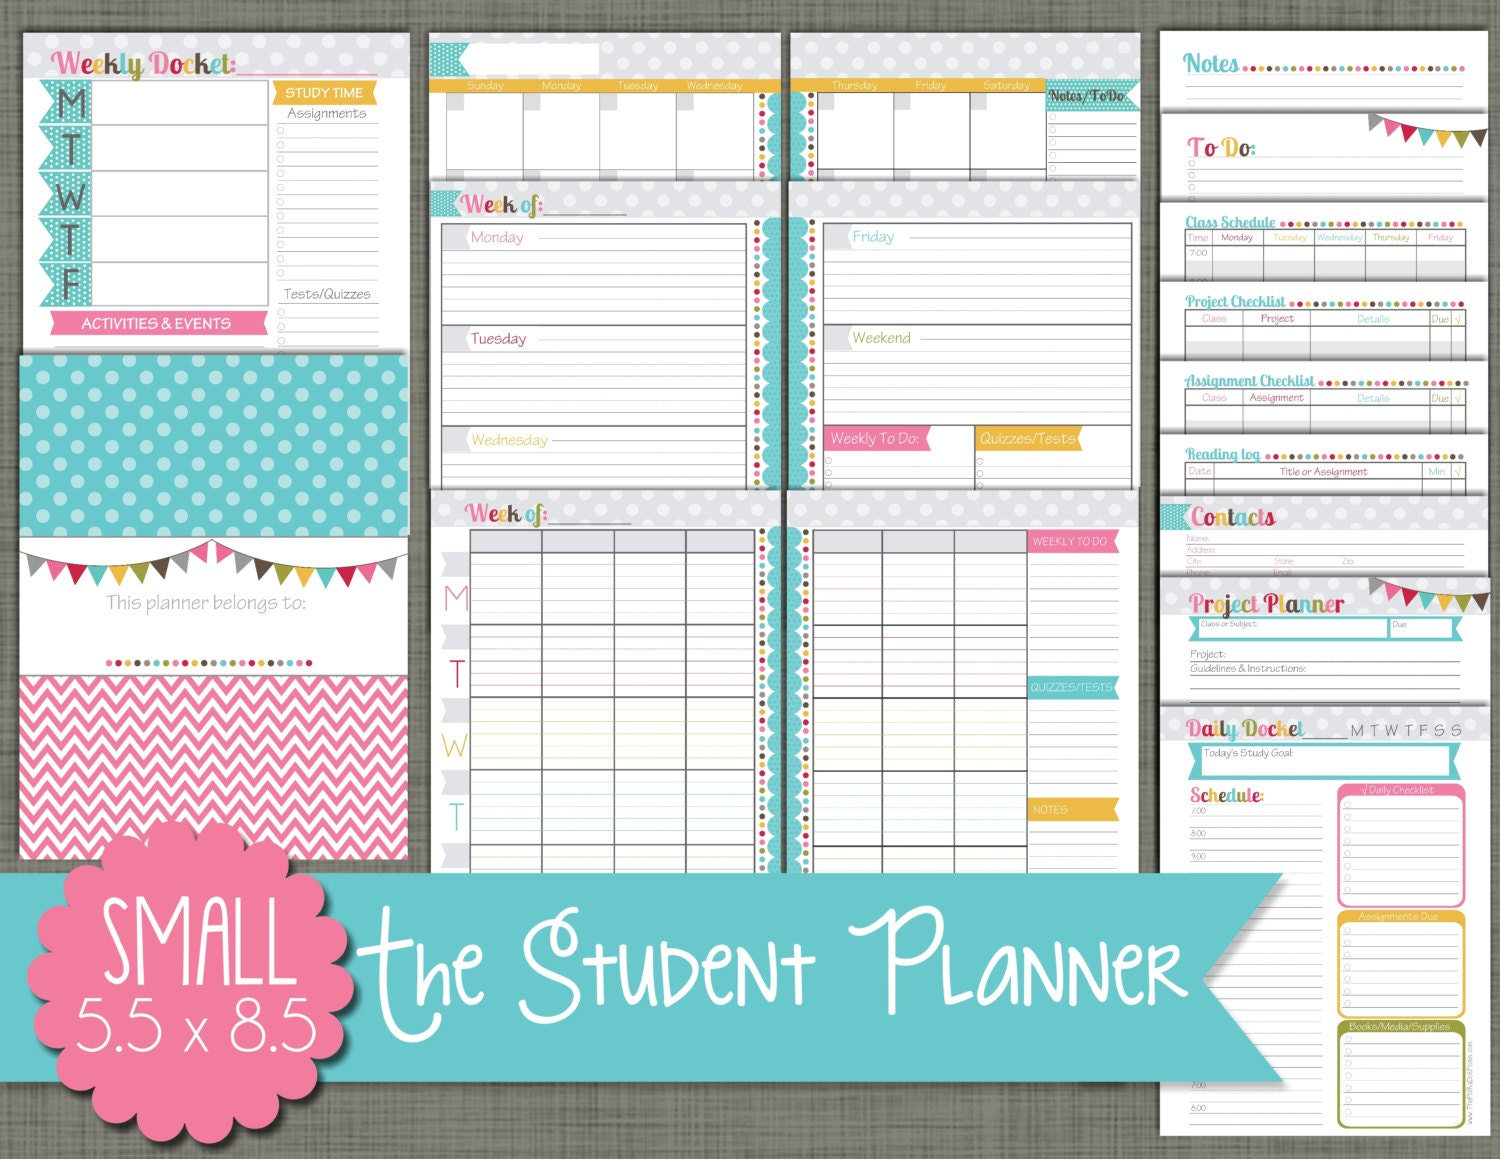 It's just a photo of Bewitching Printable Academic Planner